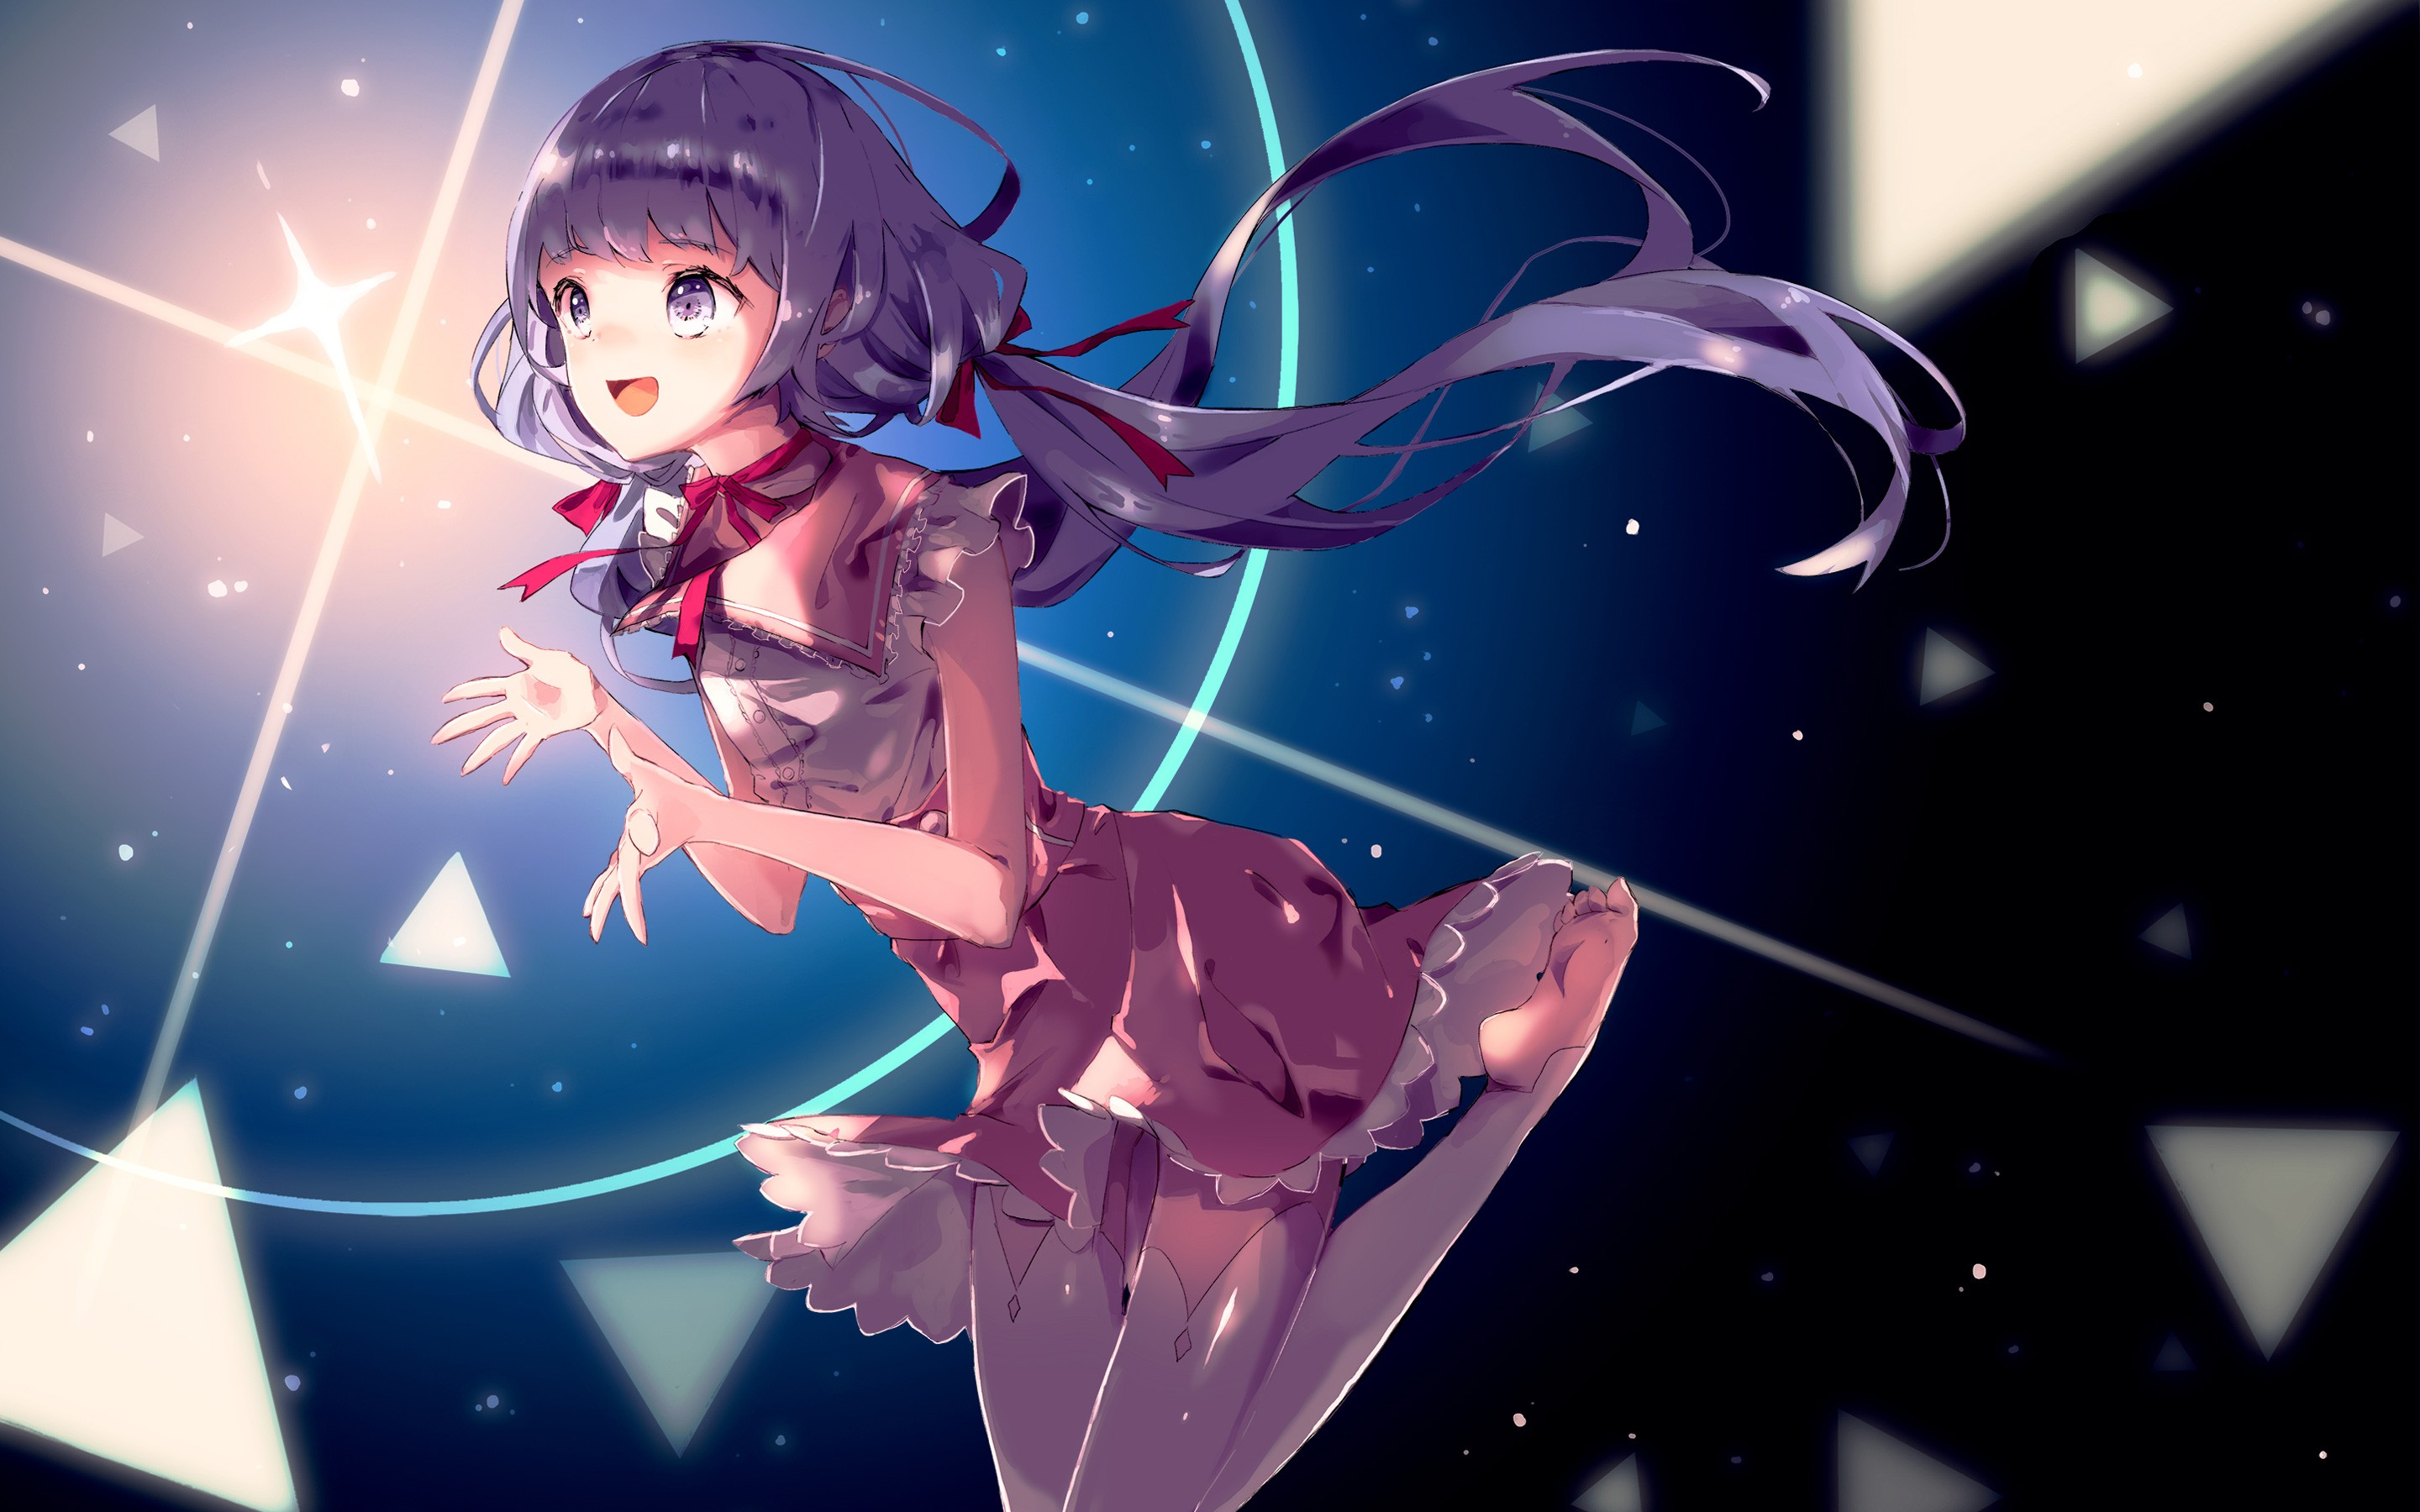 Anime girl background download free amazing full hd - Anime images download ...